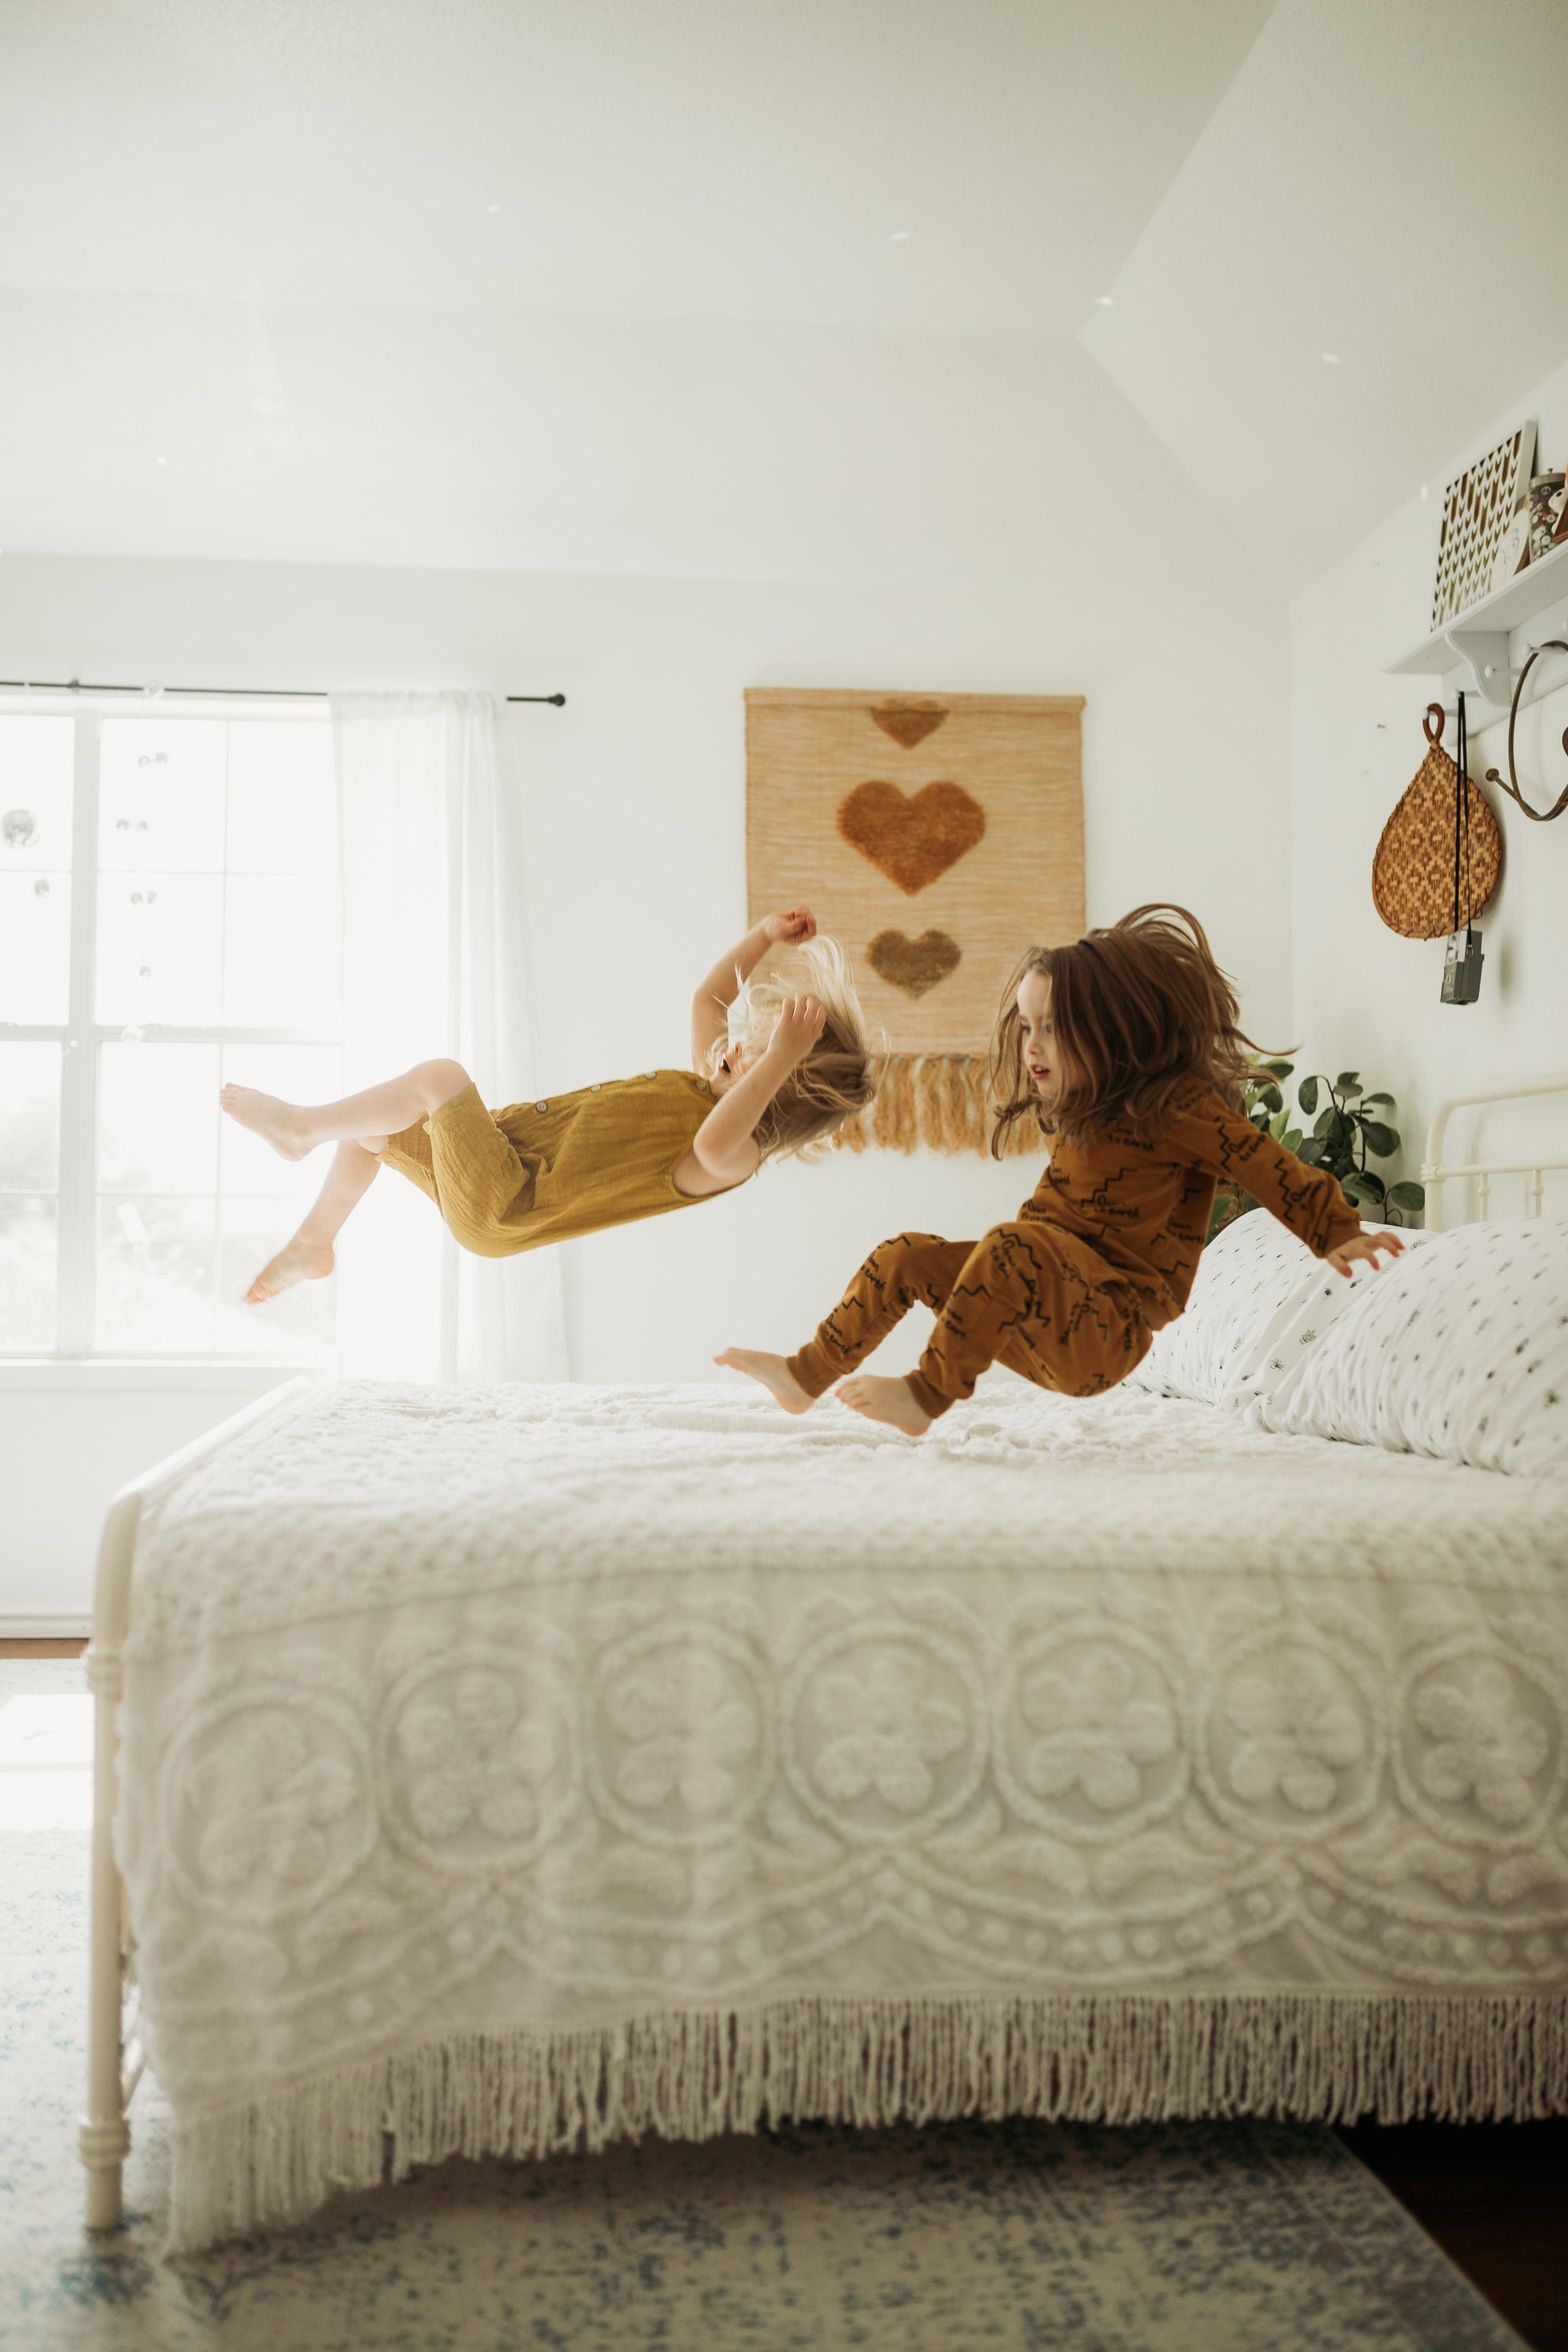 5 Tips To Help Your Mattress Decompress